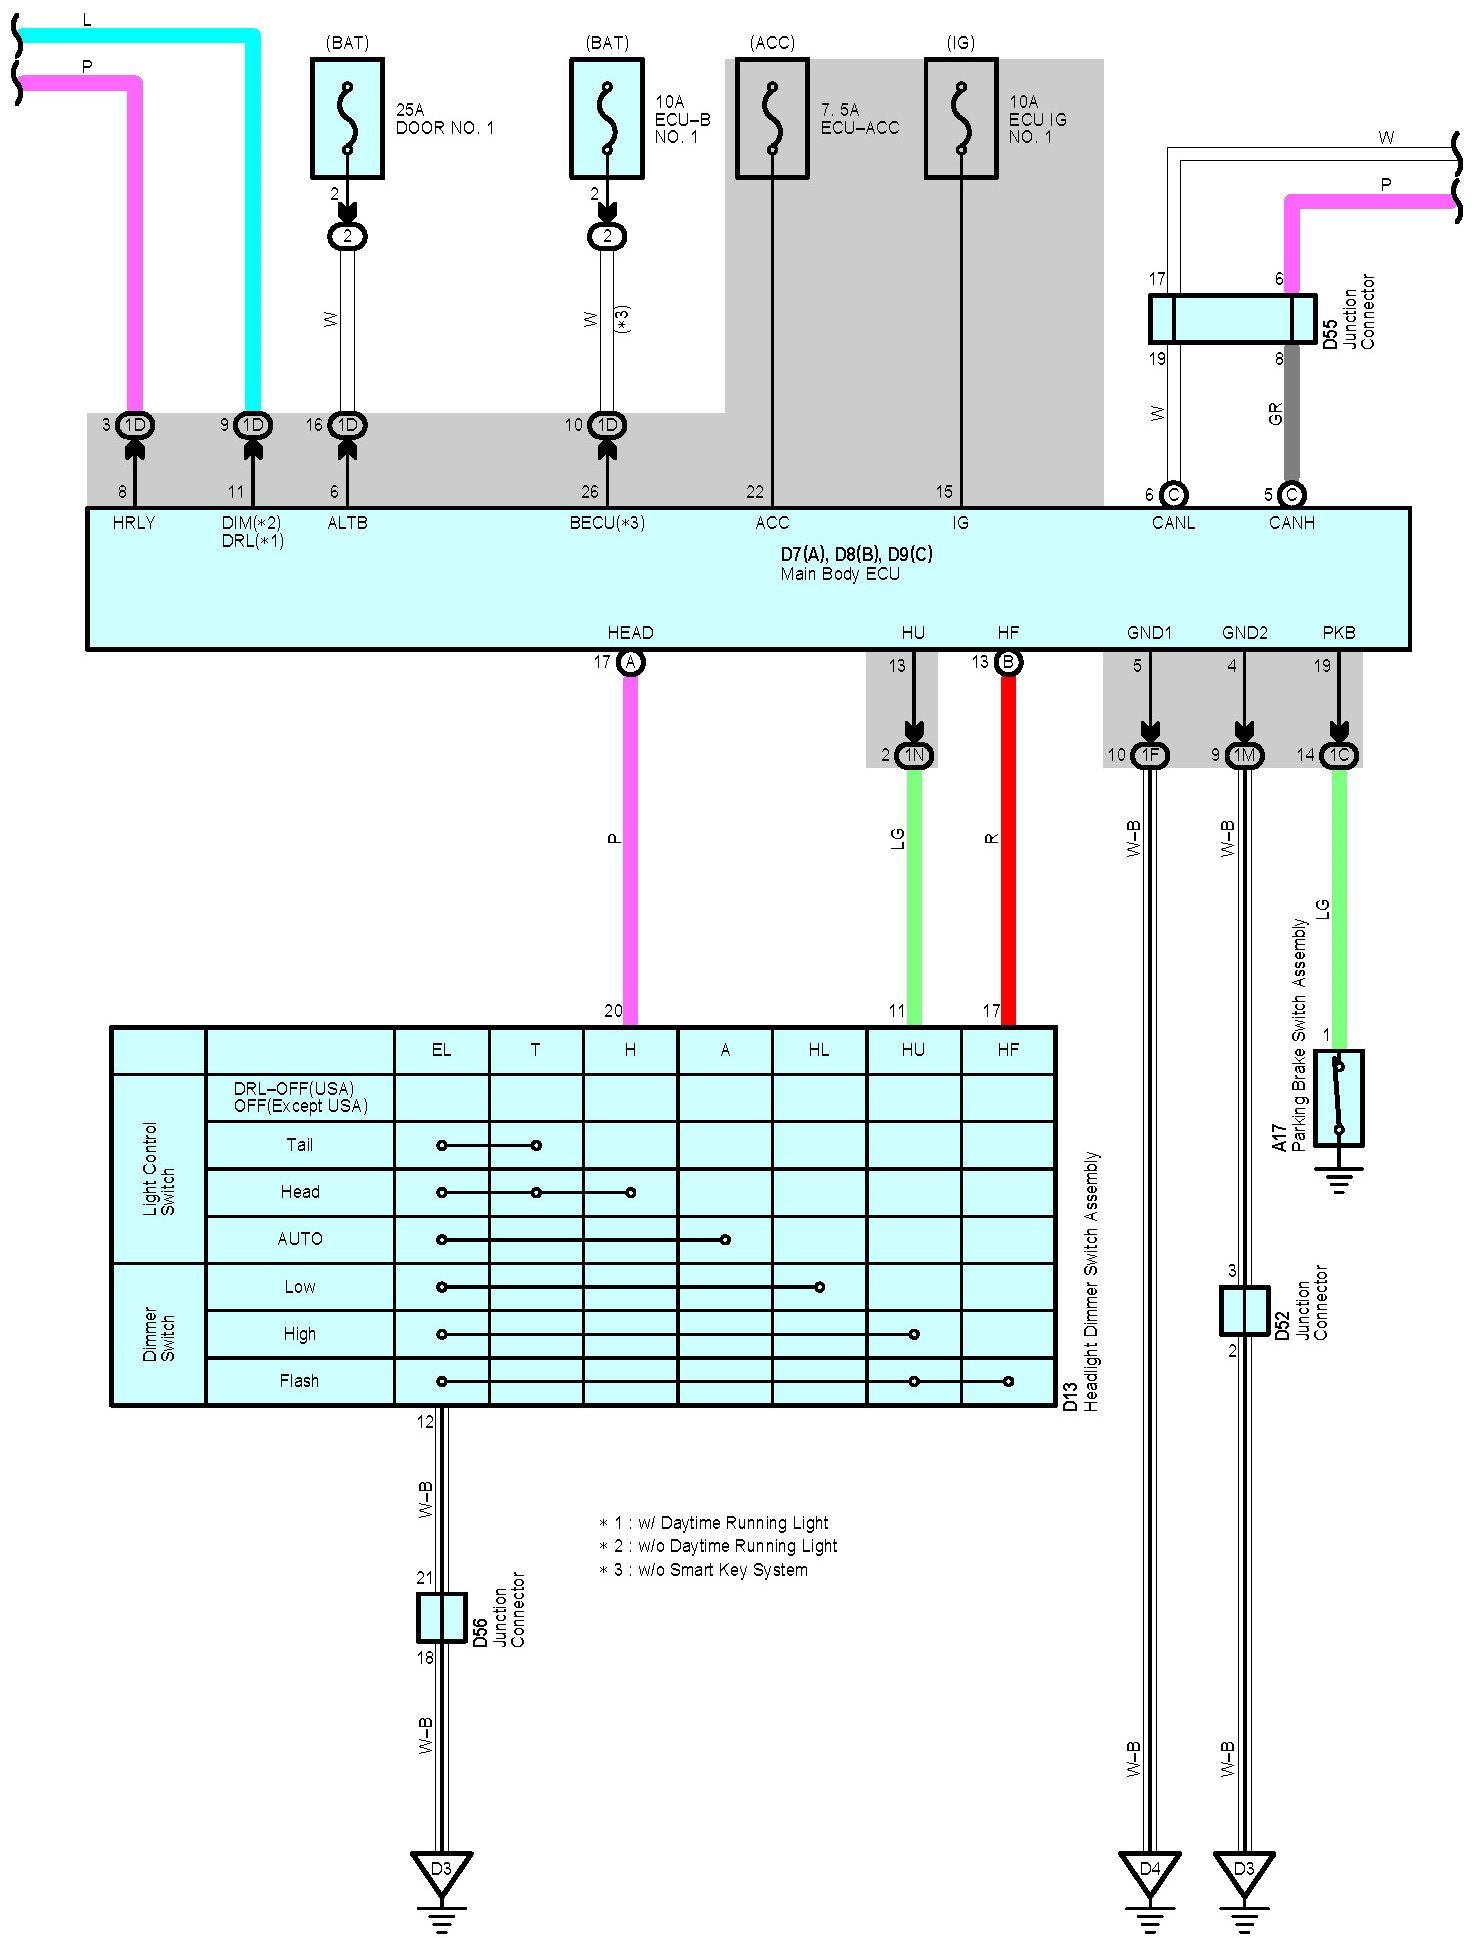 United Pacific Headlights Wiring Diagram from www.toyotanation.com